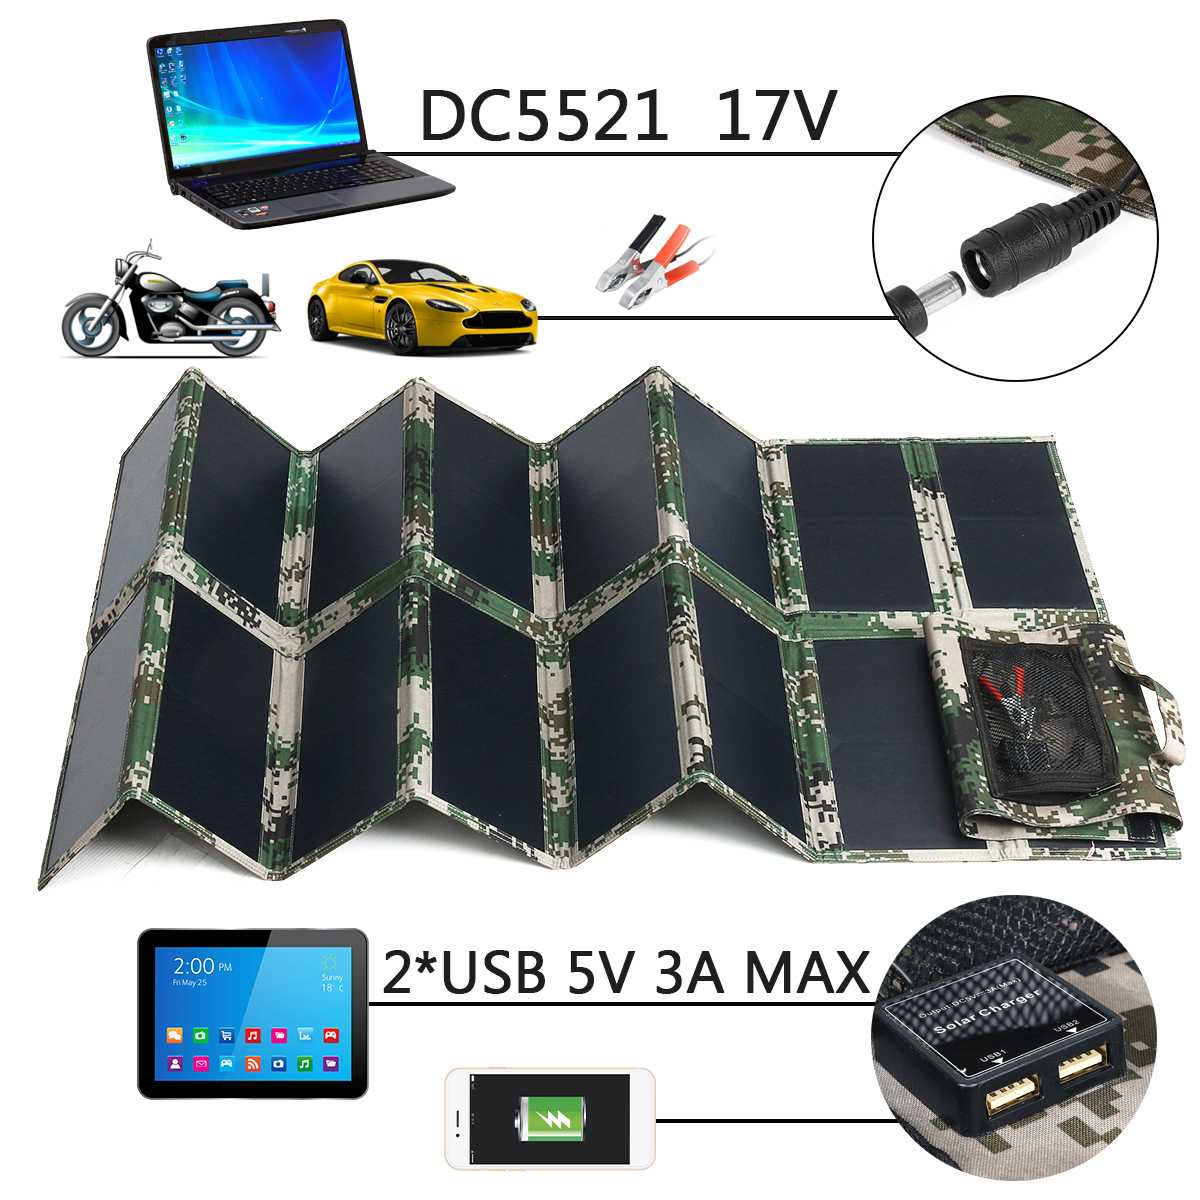 17V 100W Folding Foldable Waterproof Solar Panel Charger Mobile Power Bank 2 USB Port 5V 3A DC5521 For Phone Laptop Car Outdoor17V 100W Folding Foldable Waterproof Solar Panel Charger Mobile Power Bank 2 USB Port 5V 3A DC5521 For Phone Laptop Car Outdoor